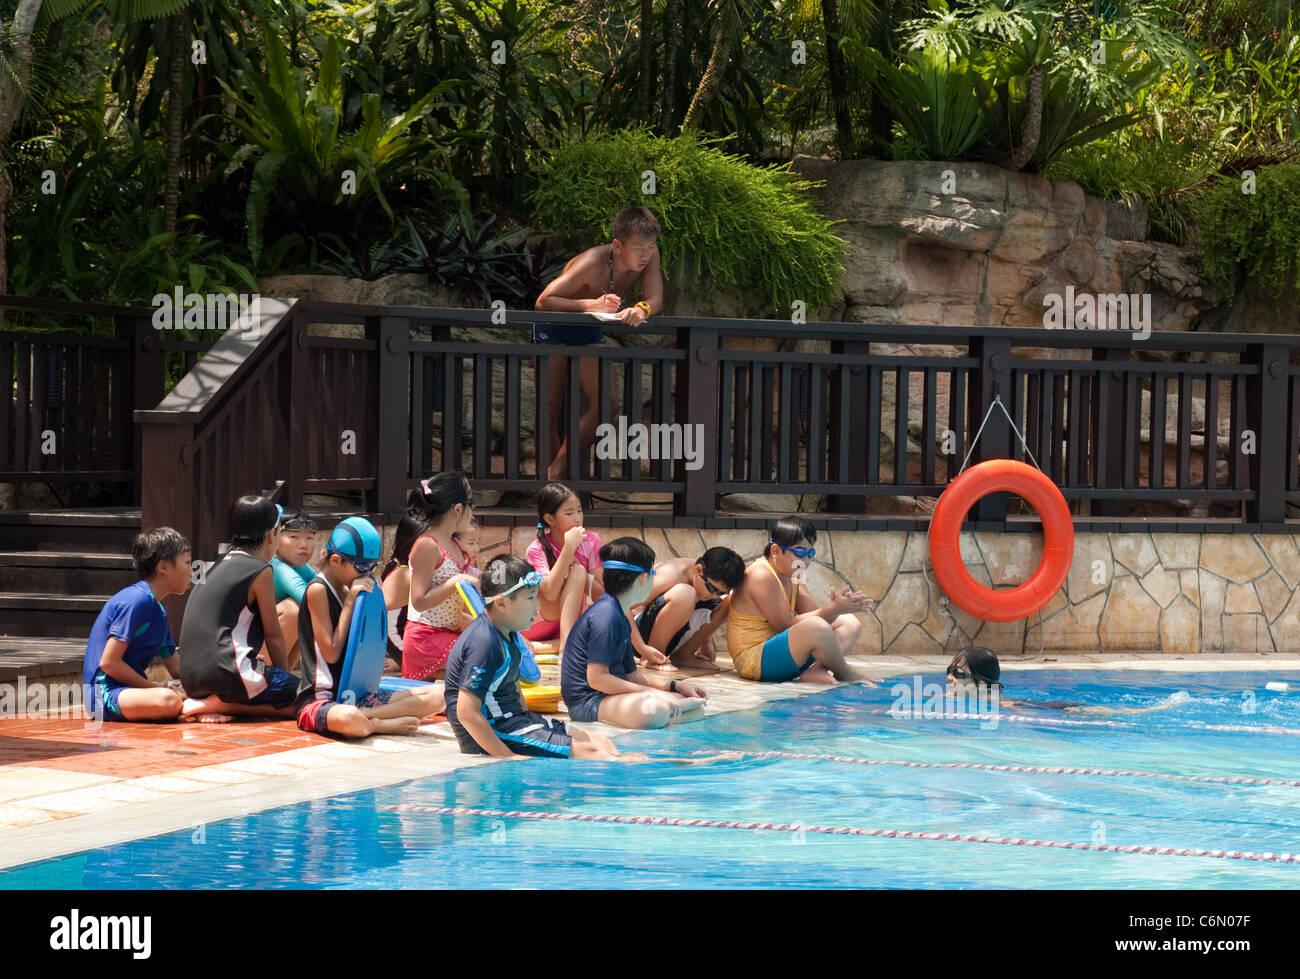 Primary schoolchildren having a swimming lesson with their teacher, Singapore, Asia - Stock Image